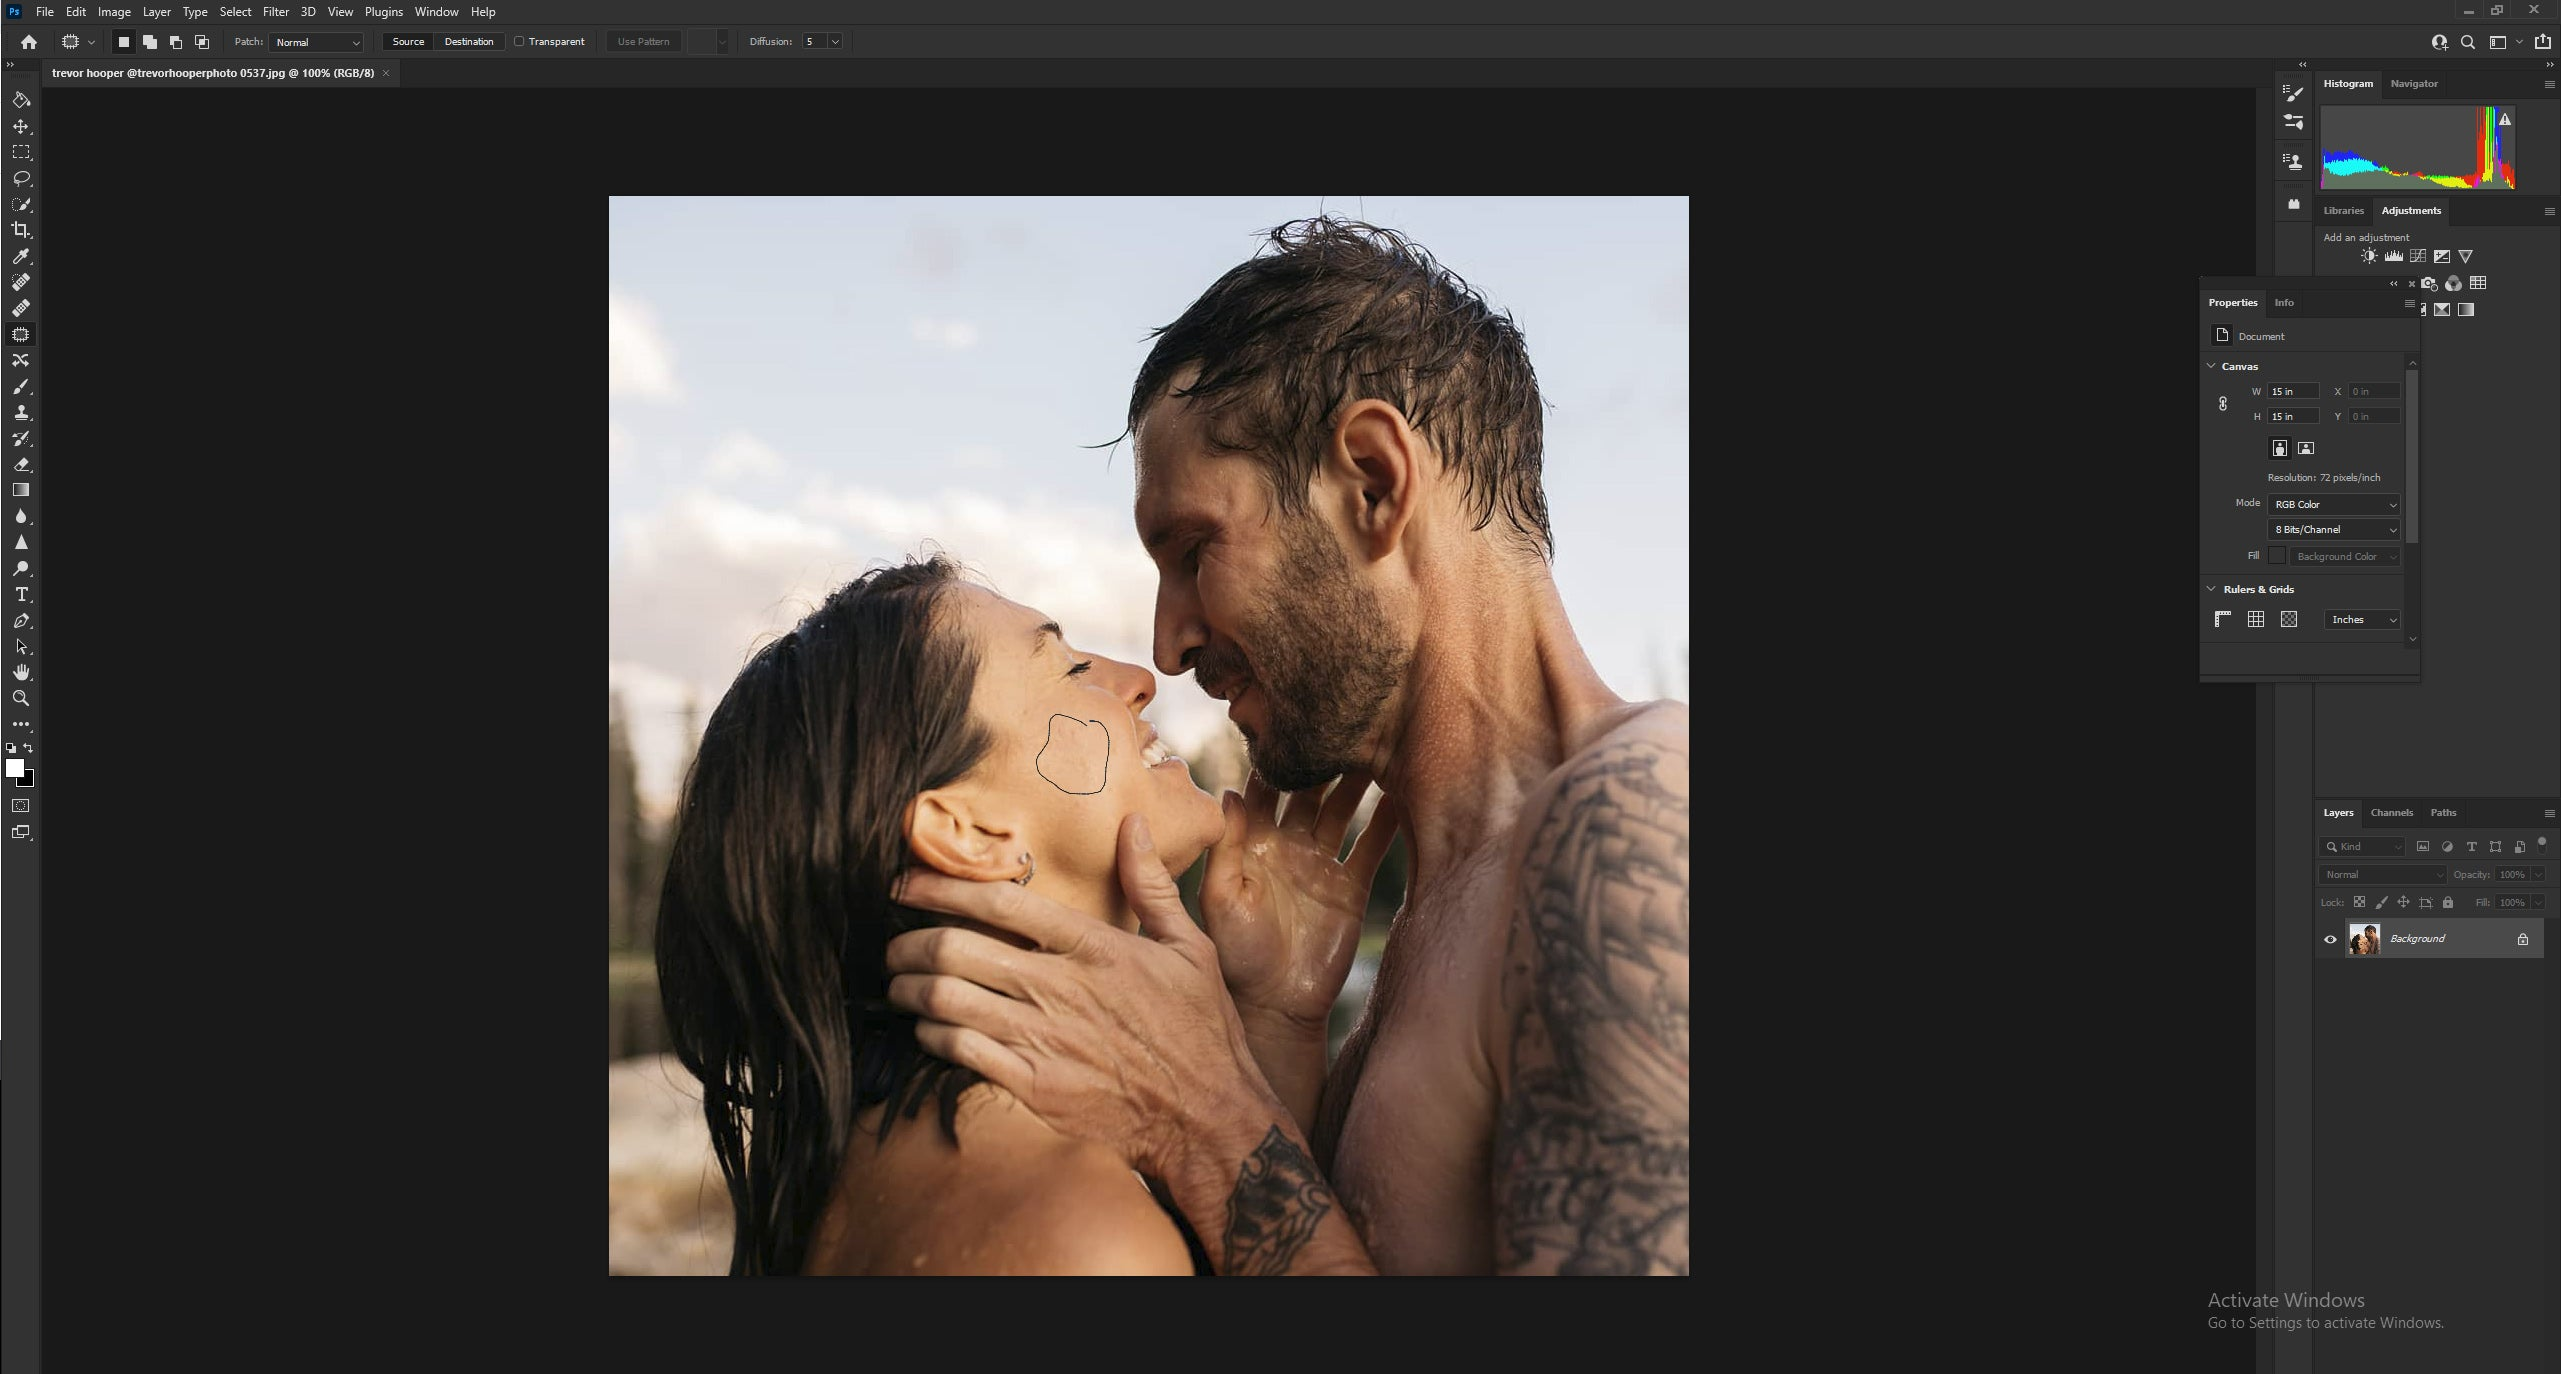 Editing the subject's skin in Photoshop